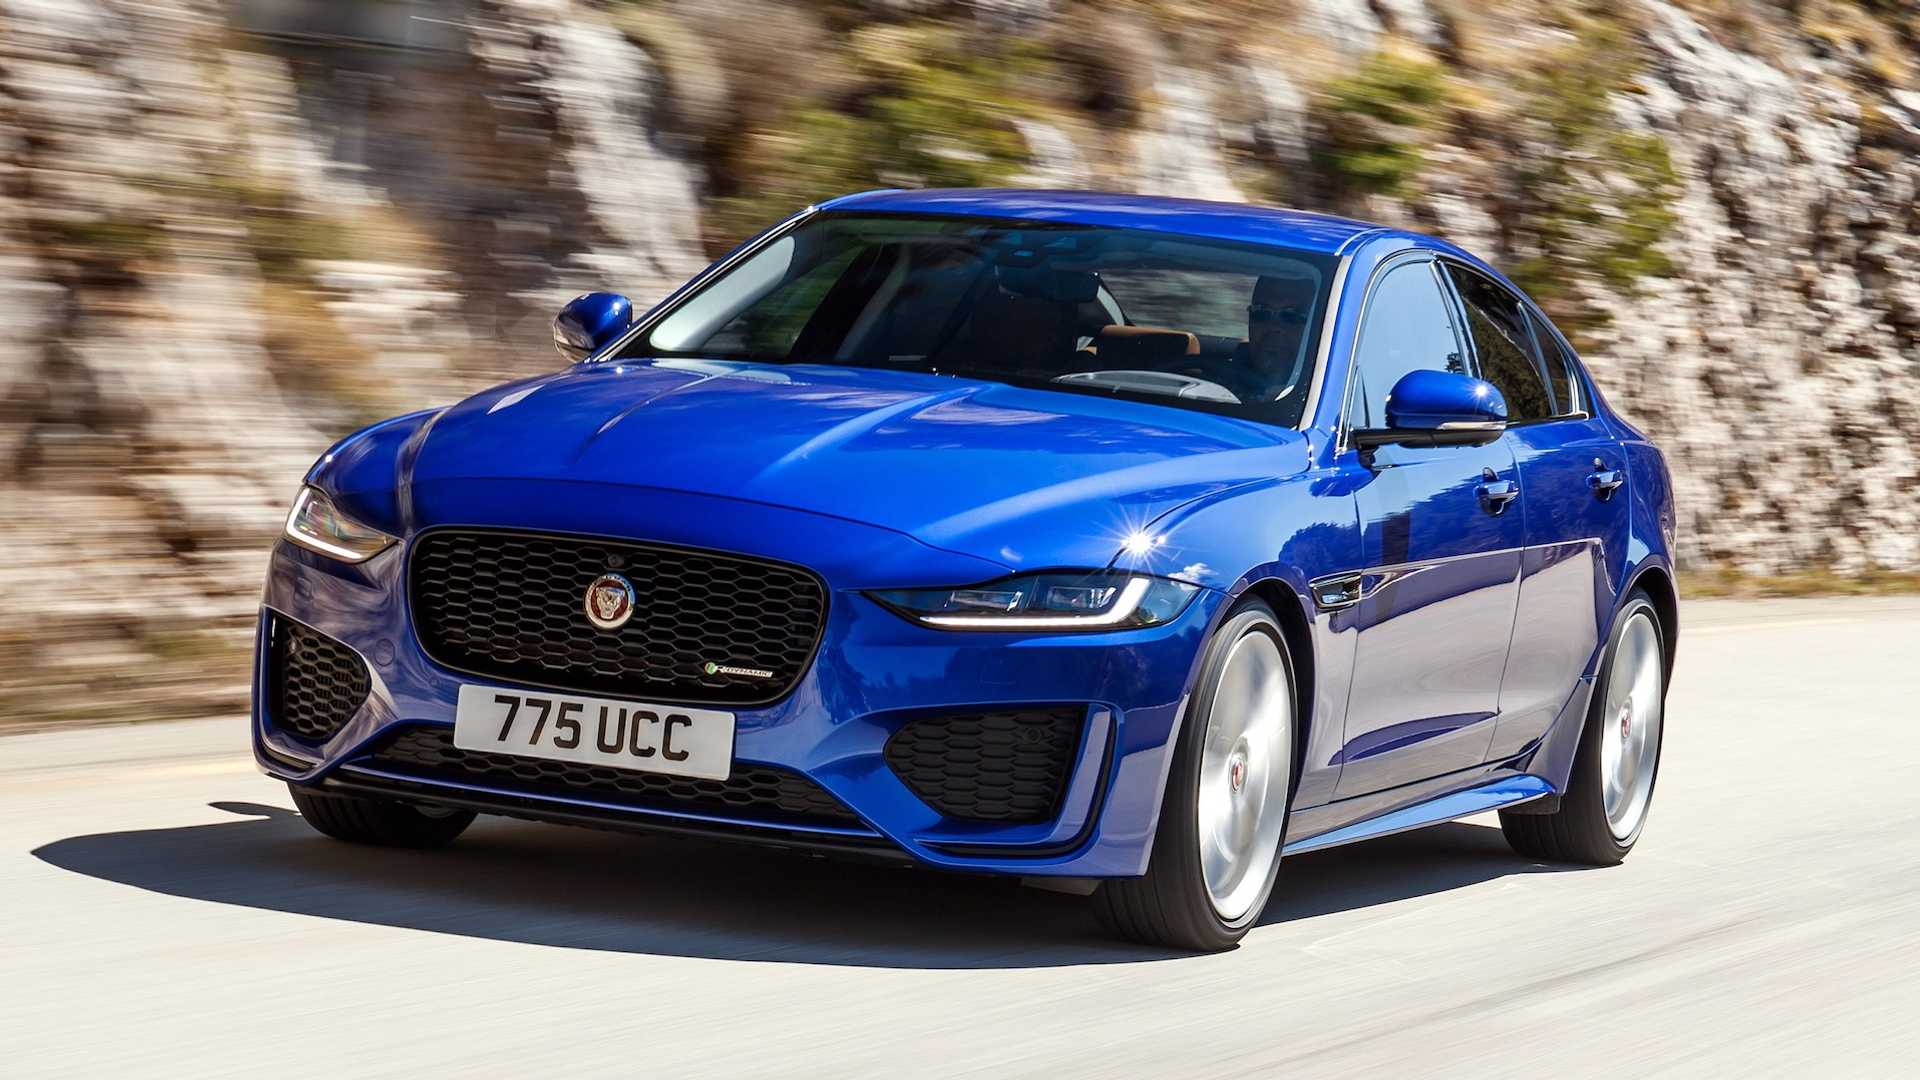 40 Best 2020 Jaguar Xe Sedan Concept